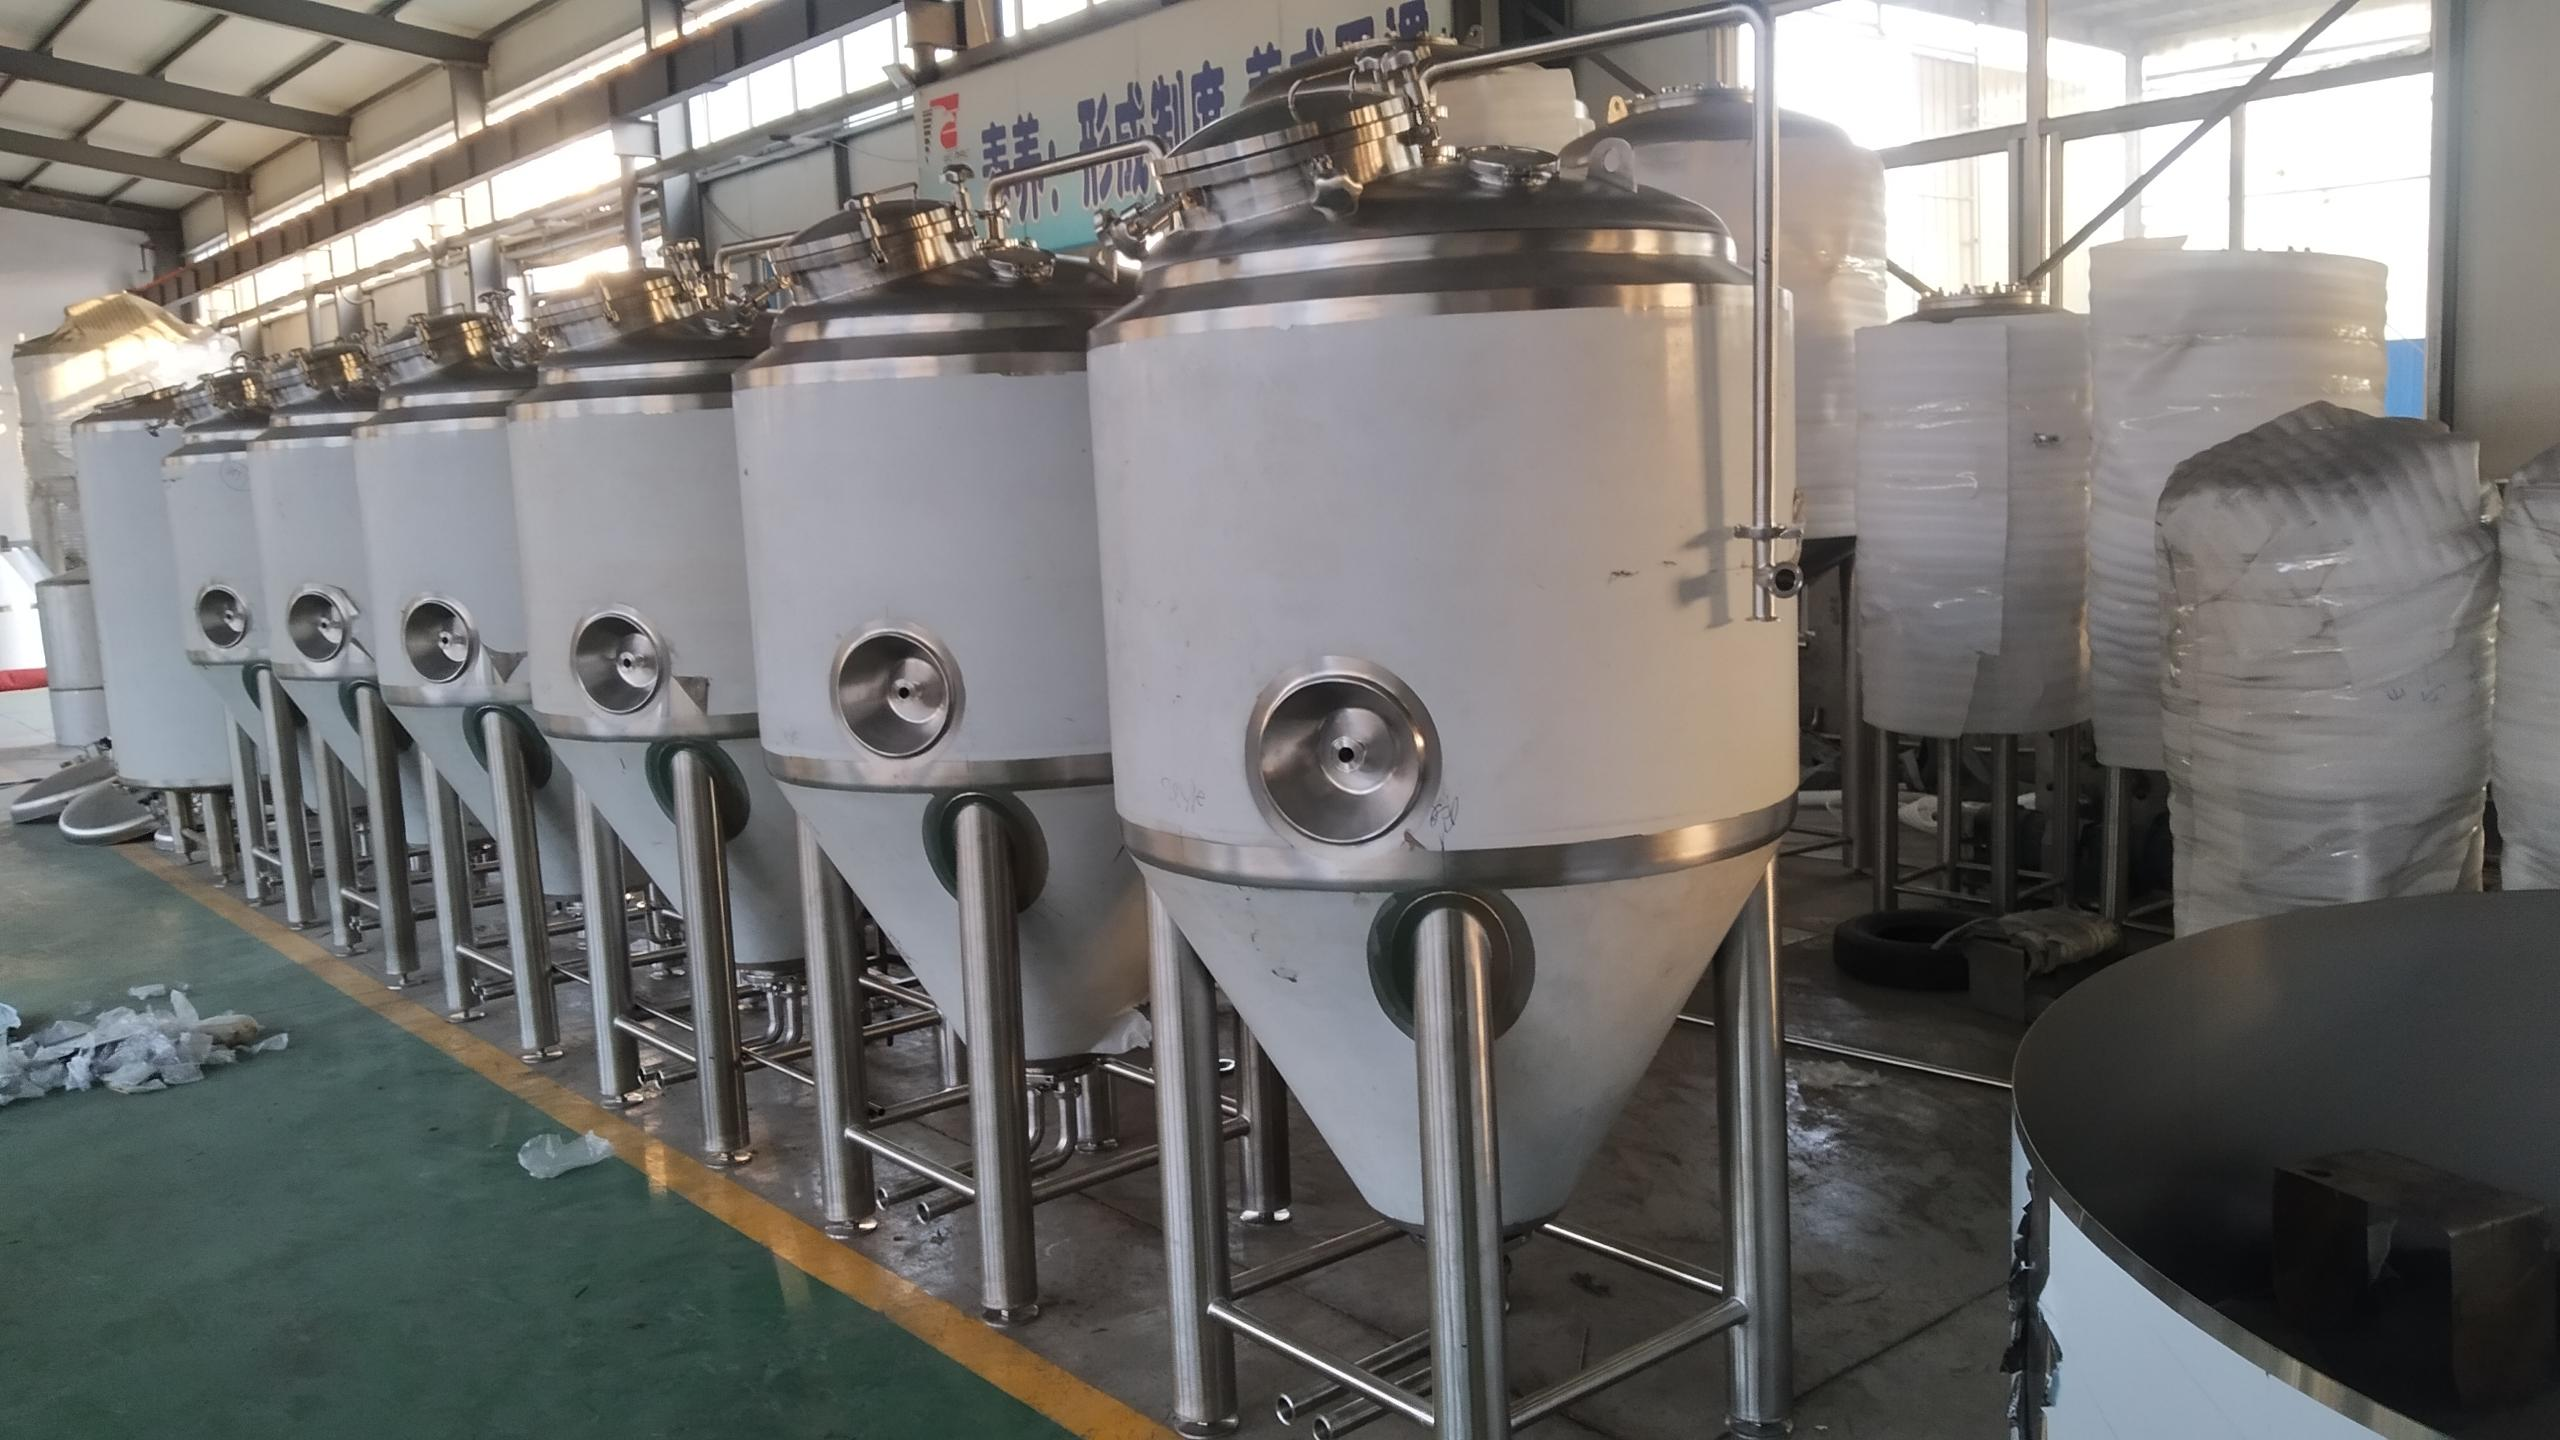 WEMAC brewing equipment to make craft beer at brew...